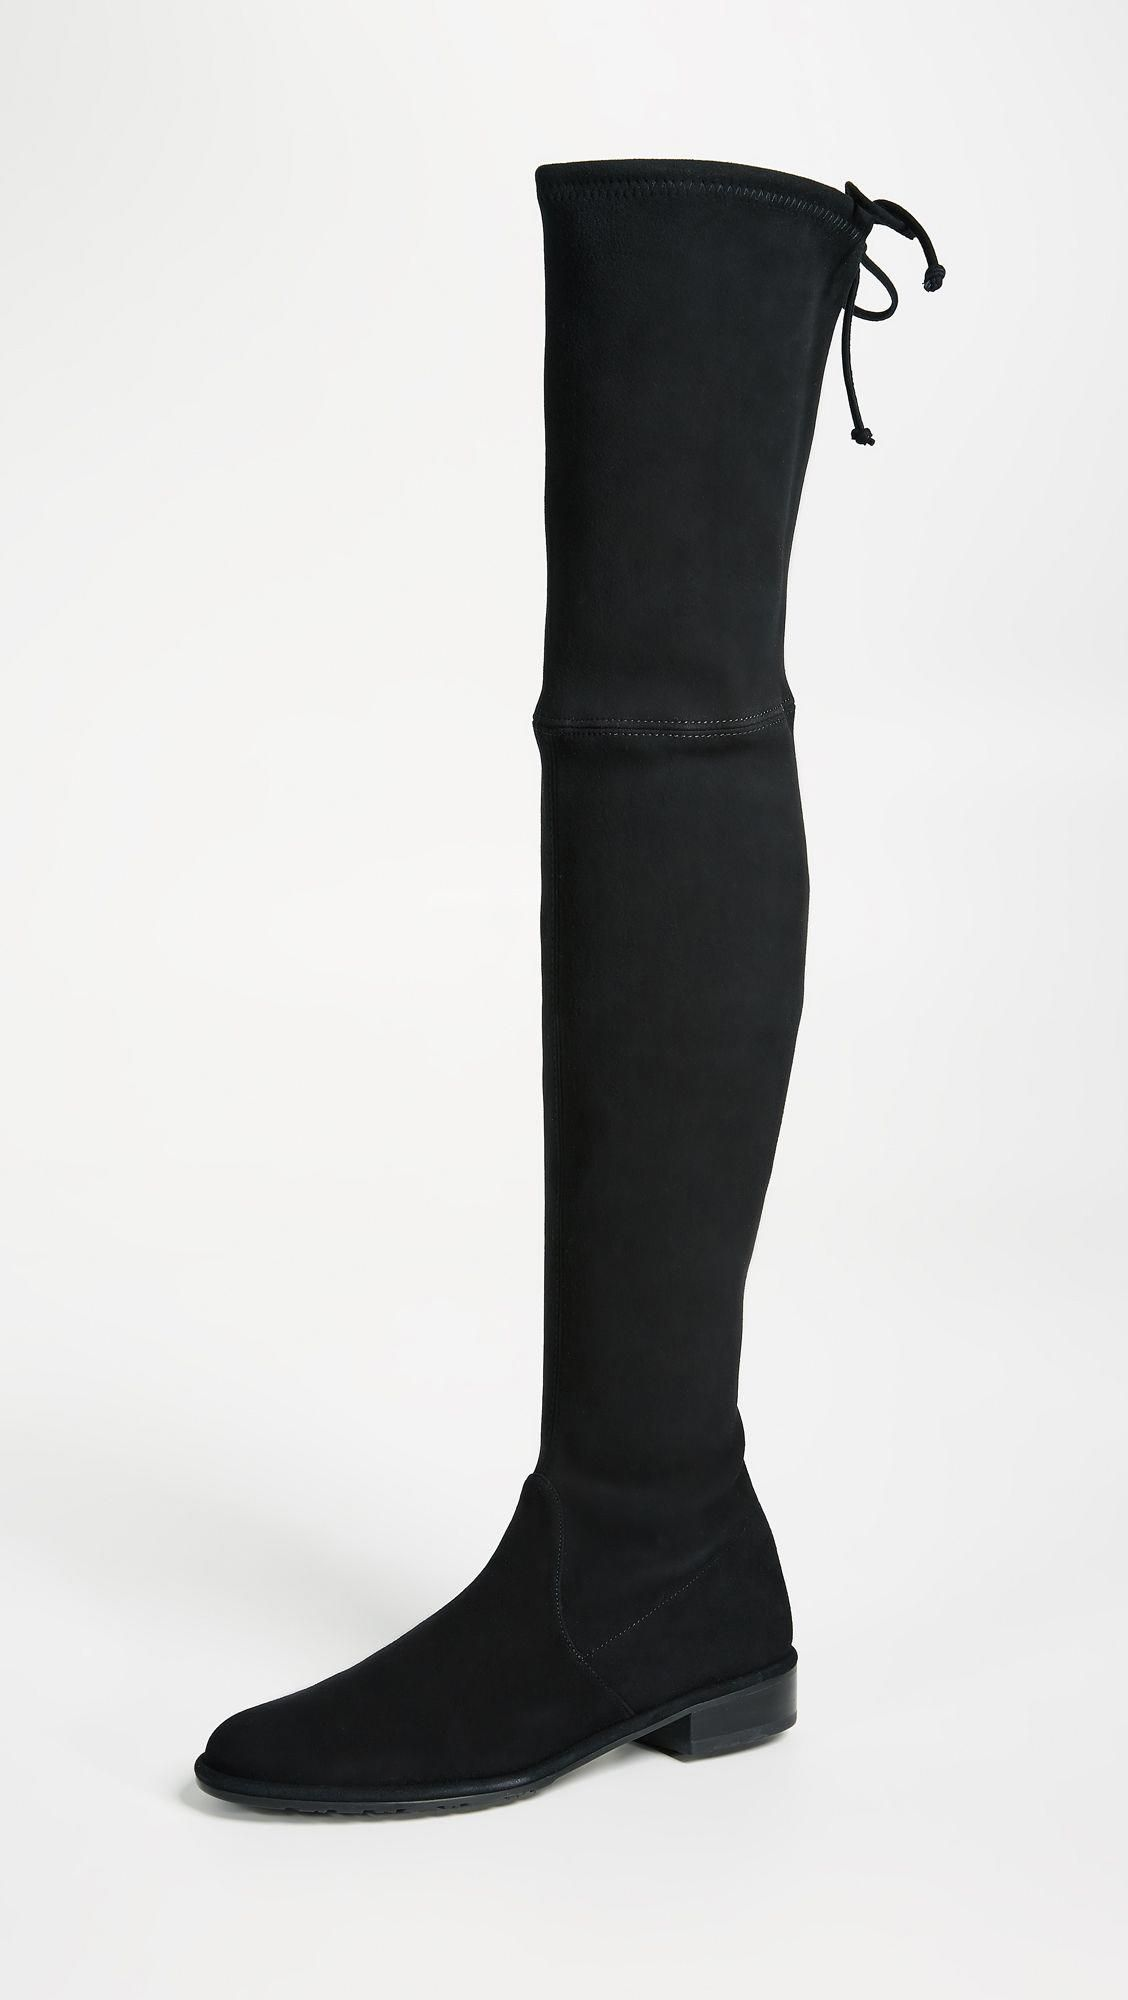 3acc1251cd9 Stuart Weitzman Lowland Over the Knee Boots  StuartWeitzman